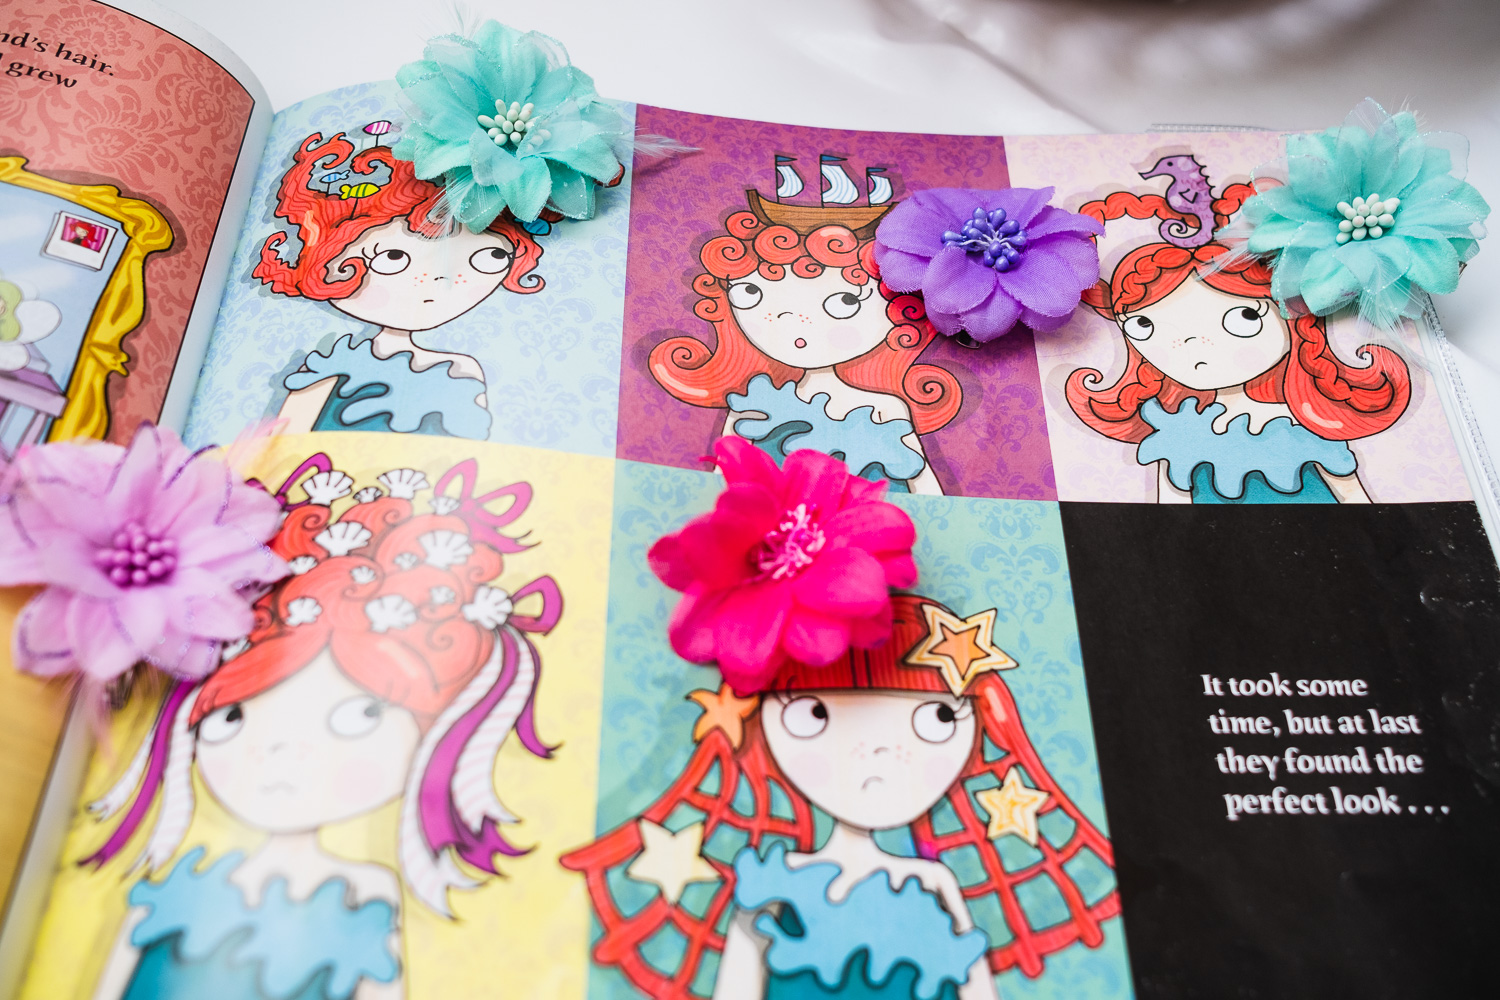 Little_Mermaid_Book_Basket-5.jpg